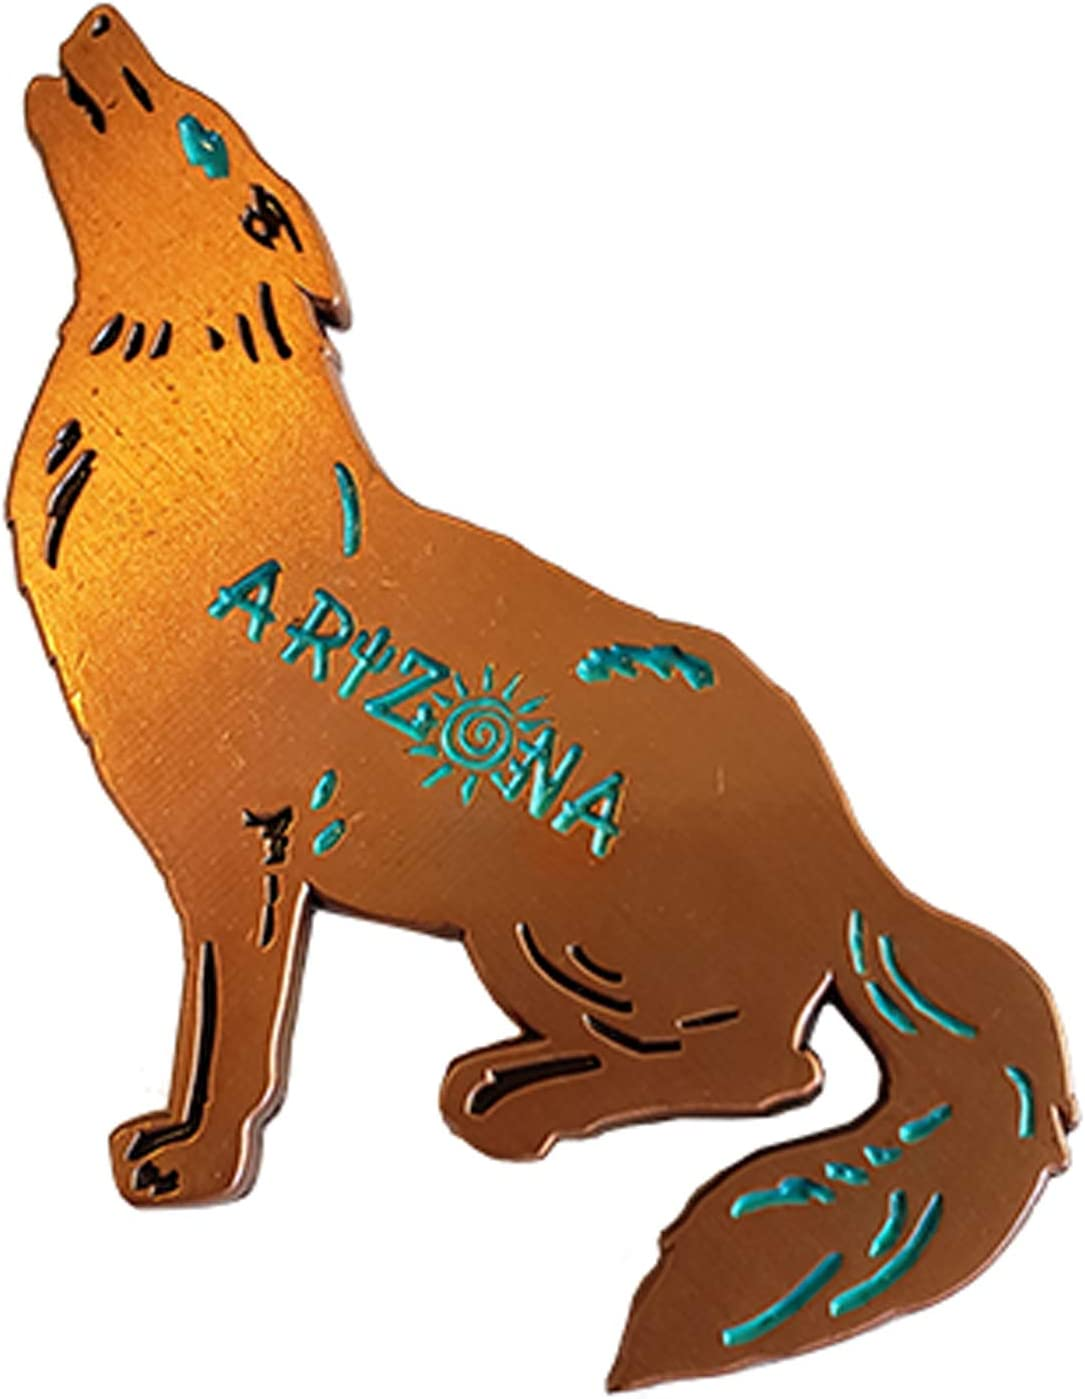 Coyote Magnet (Bronze) Decorative Metal Refrigerator Magnet Southwest Gift Idea - Arizona Souvenir